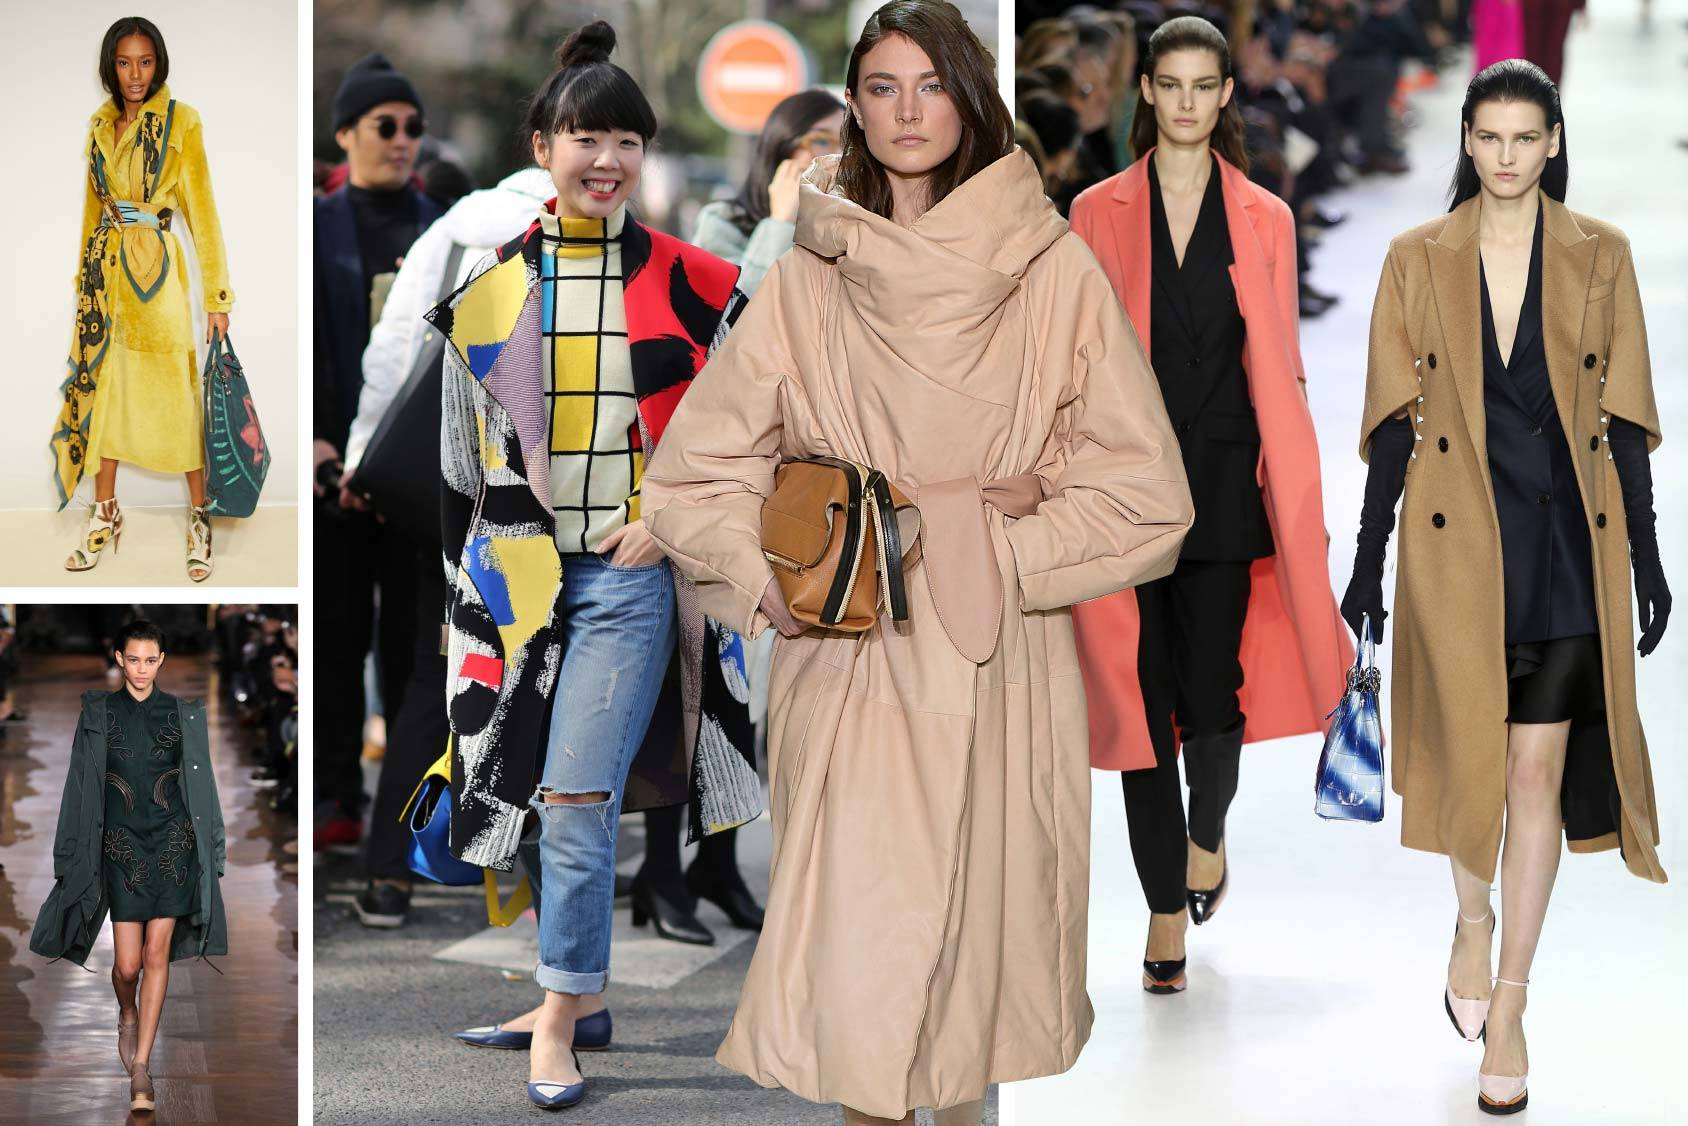 Burberry, Stella McCartney, Chloé and Dior Fall/Winter 2014 and blogger Susie Bubble in this season's coats, All Over Press.